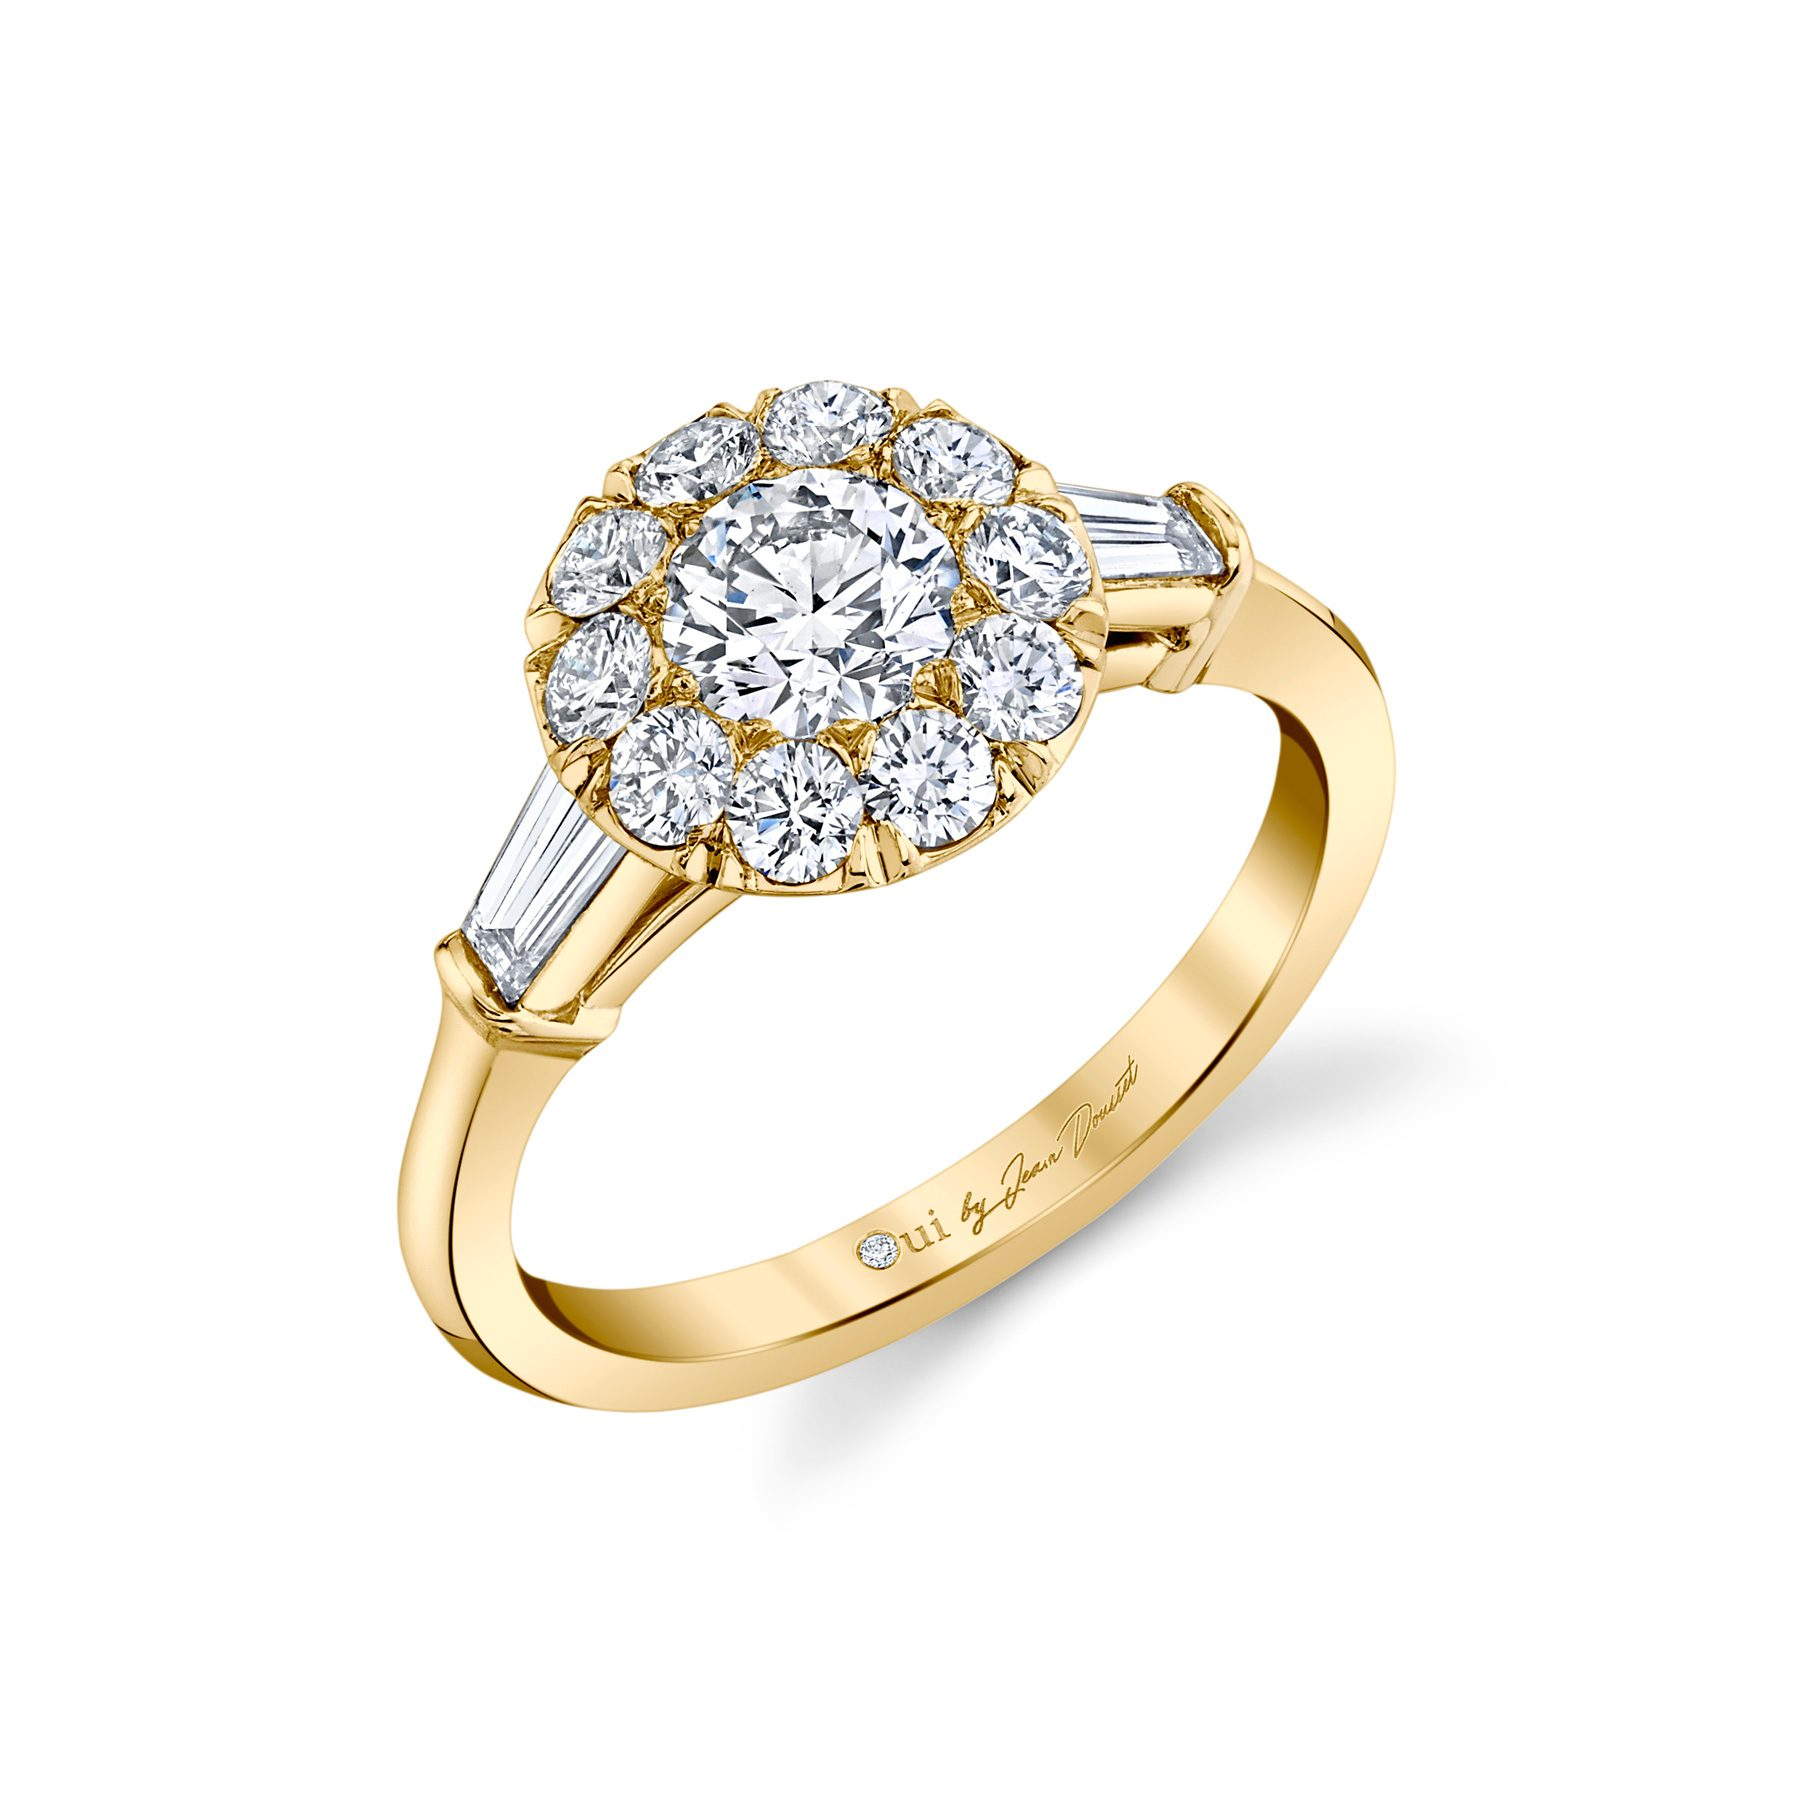 Madeline Round Brilliant Seamless Solitaire® Three Stone Engagement Ring 18k Yellow Gold Profile View by Oui by Jean Dousset